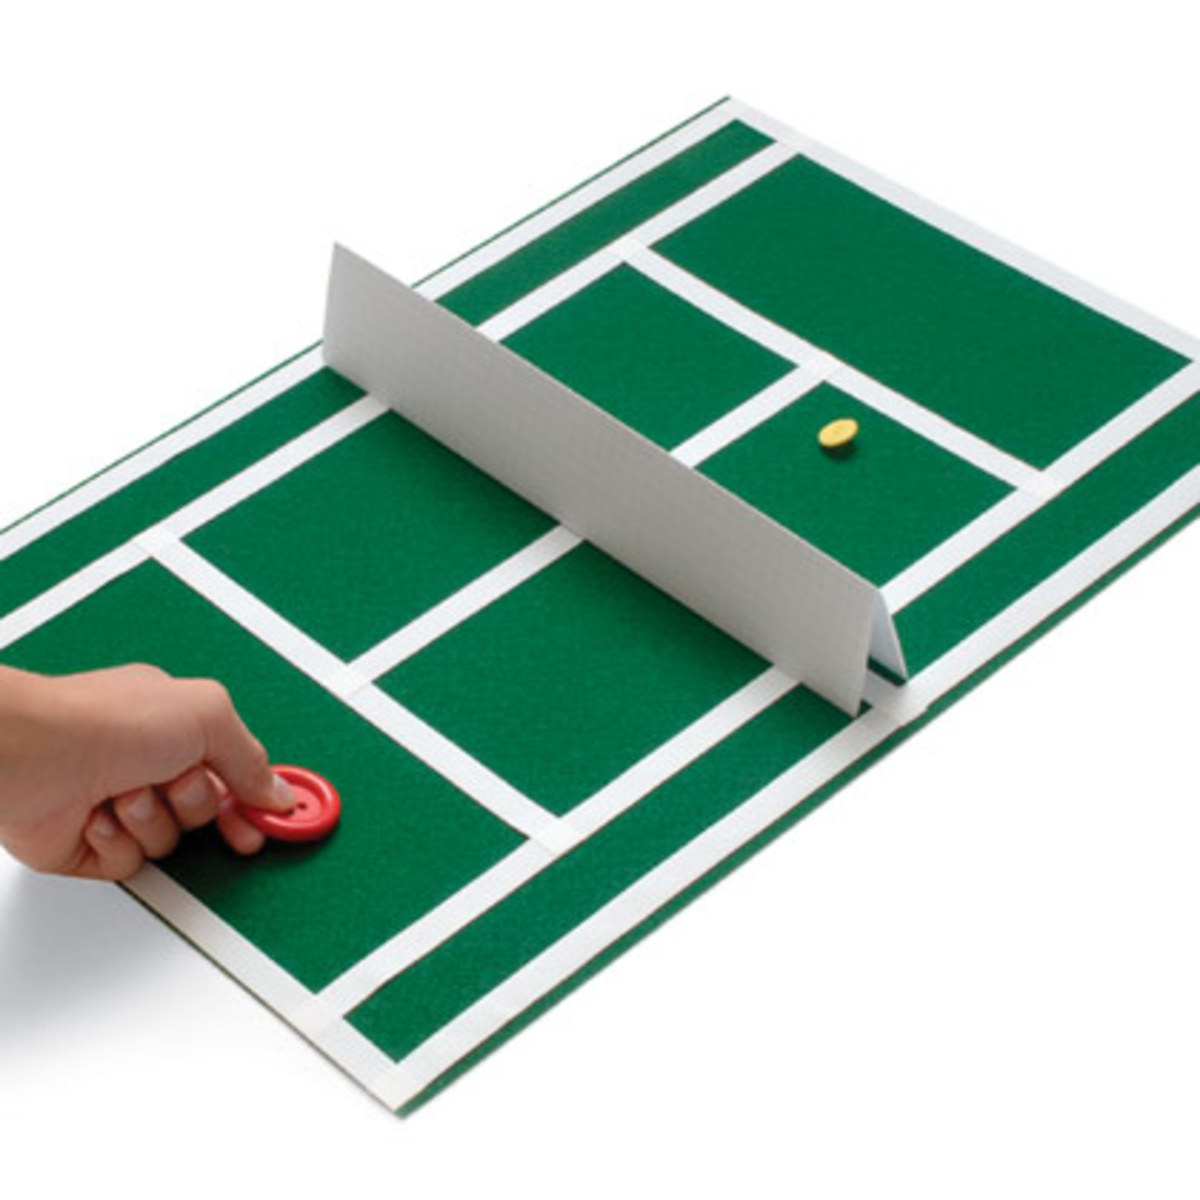 if the wink fails to go over the net your opponent gets a point, if the wink goes over the boundary lines your opponent gets a point.